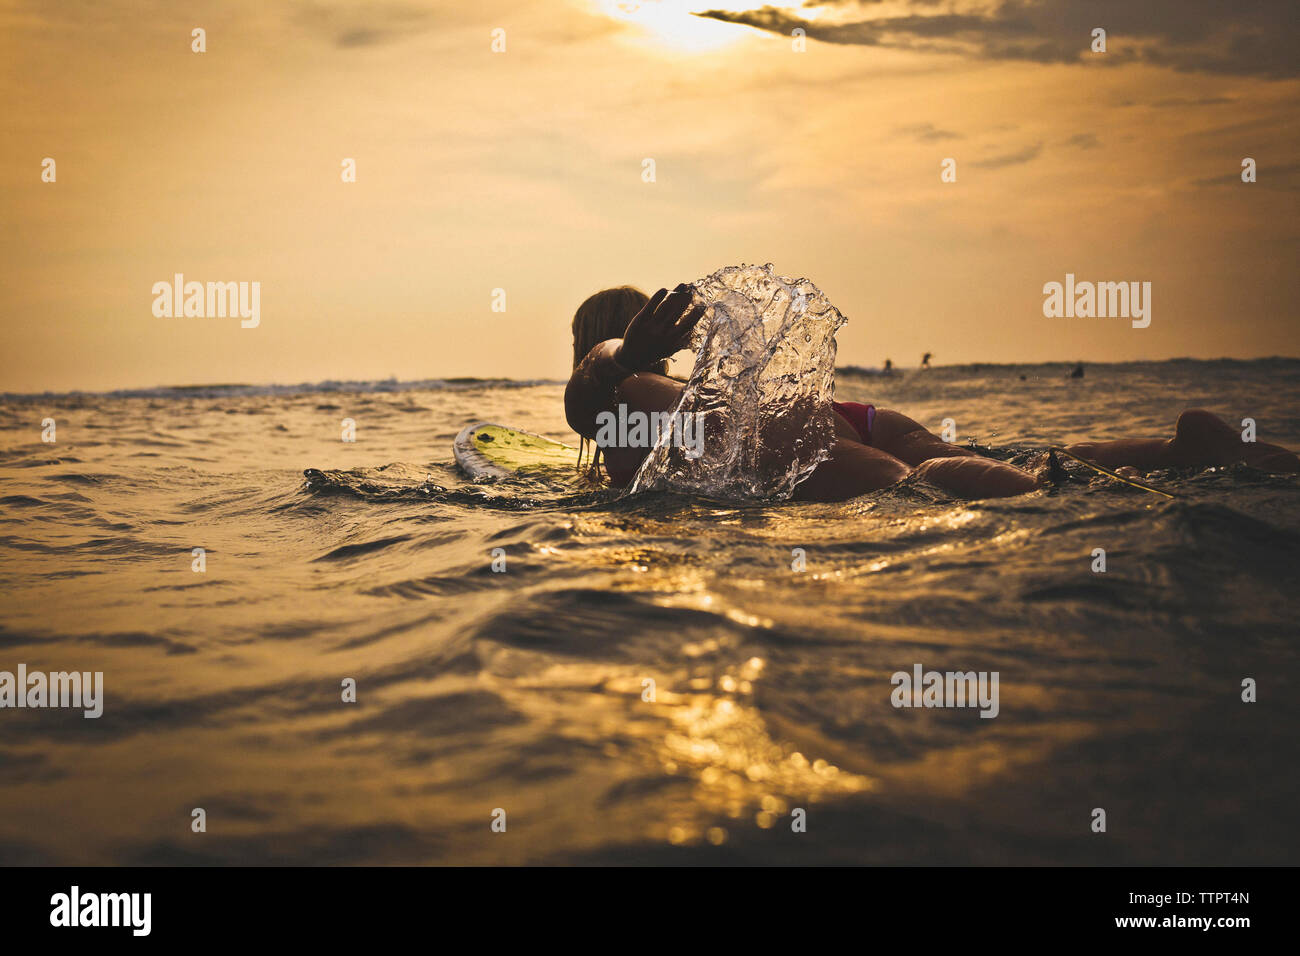 Woman surfing in sea against sky - Stock Image